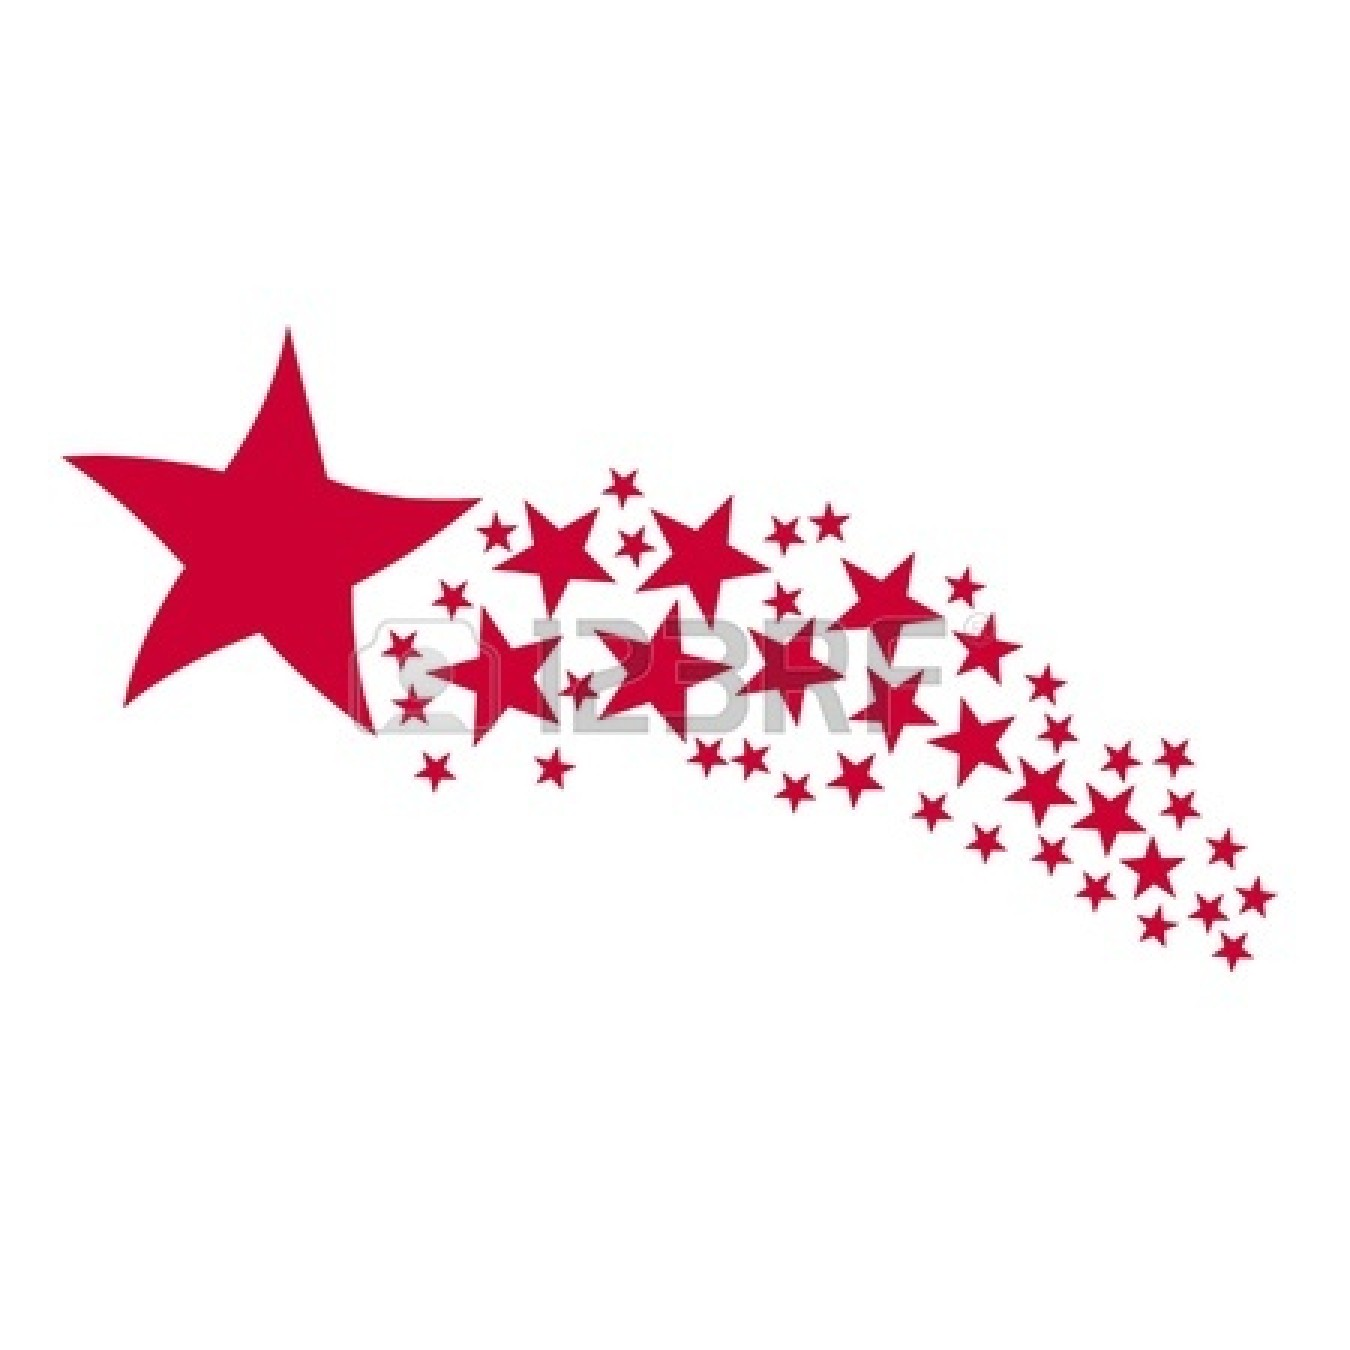 Shooting star clipart free download 2.